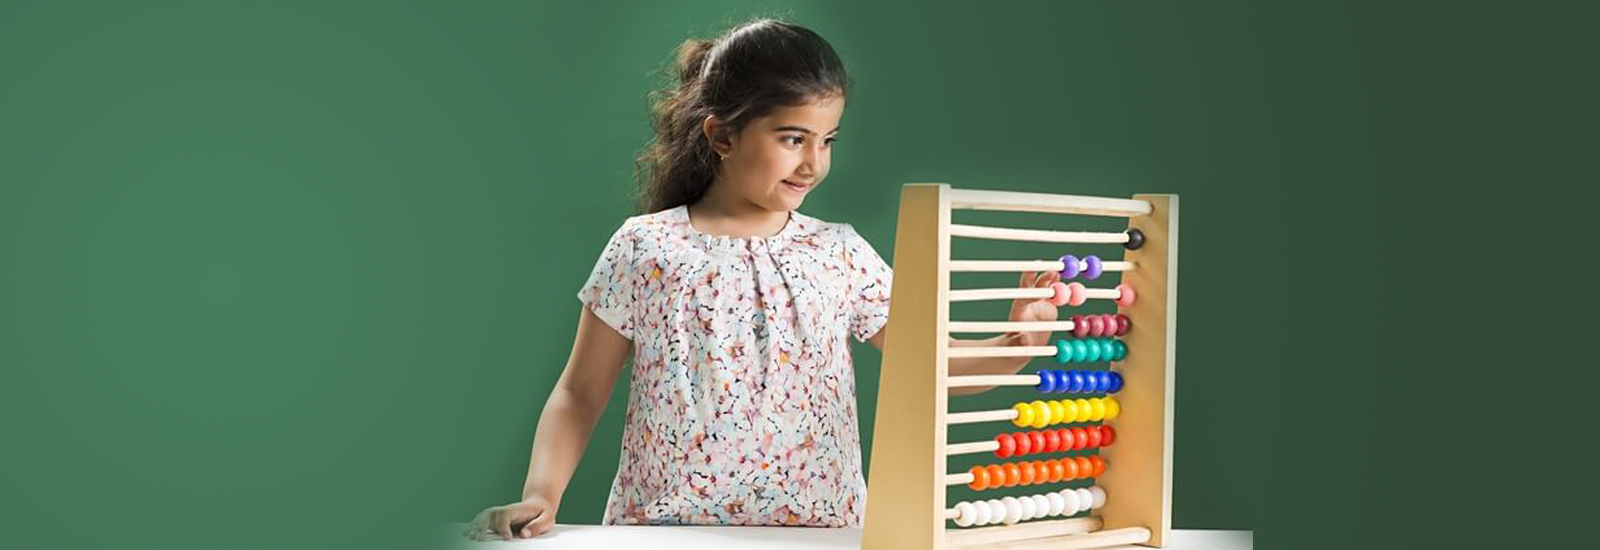 free-demo-classes-abacus-in-dwarka-delhi